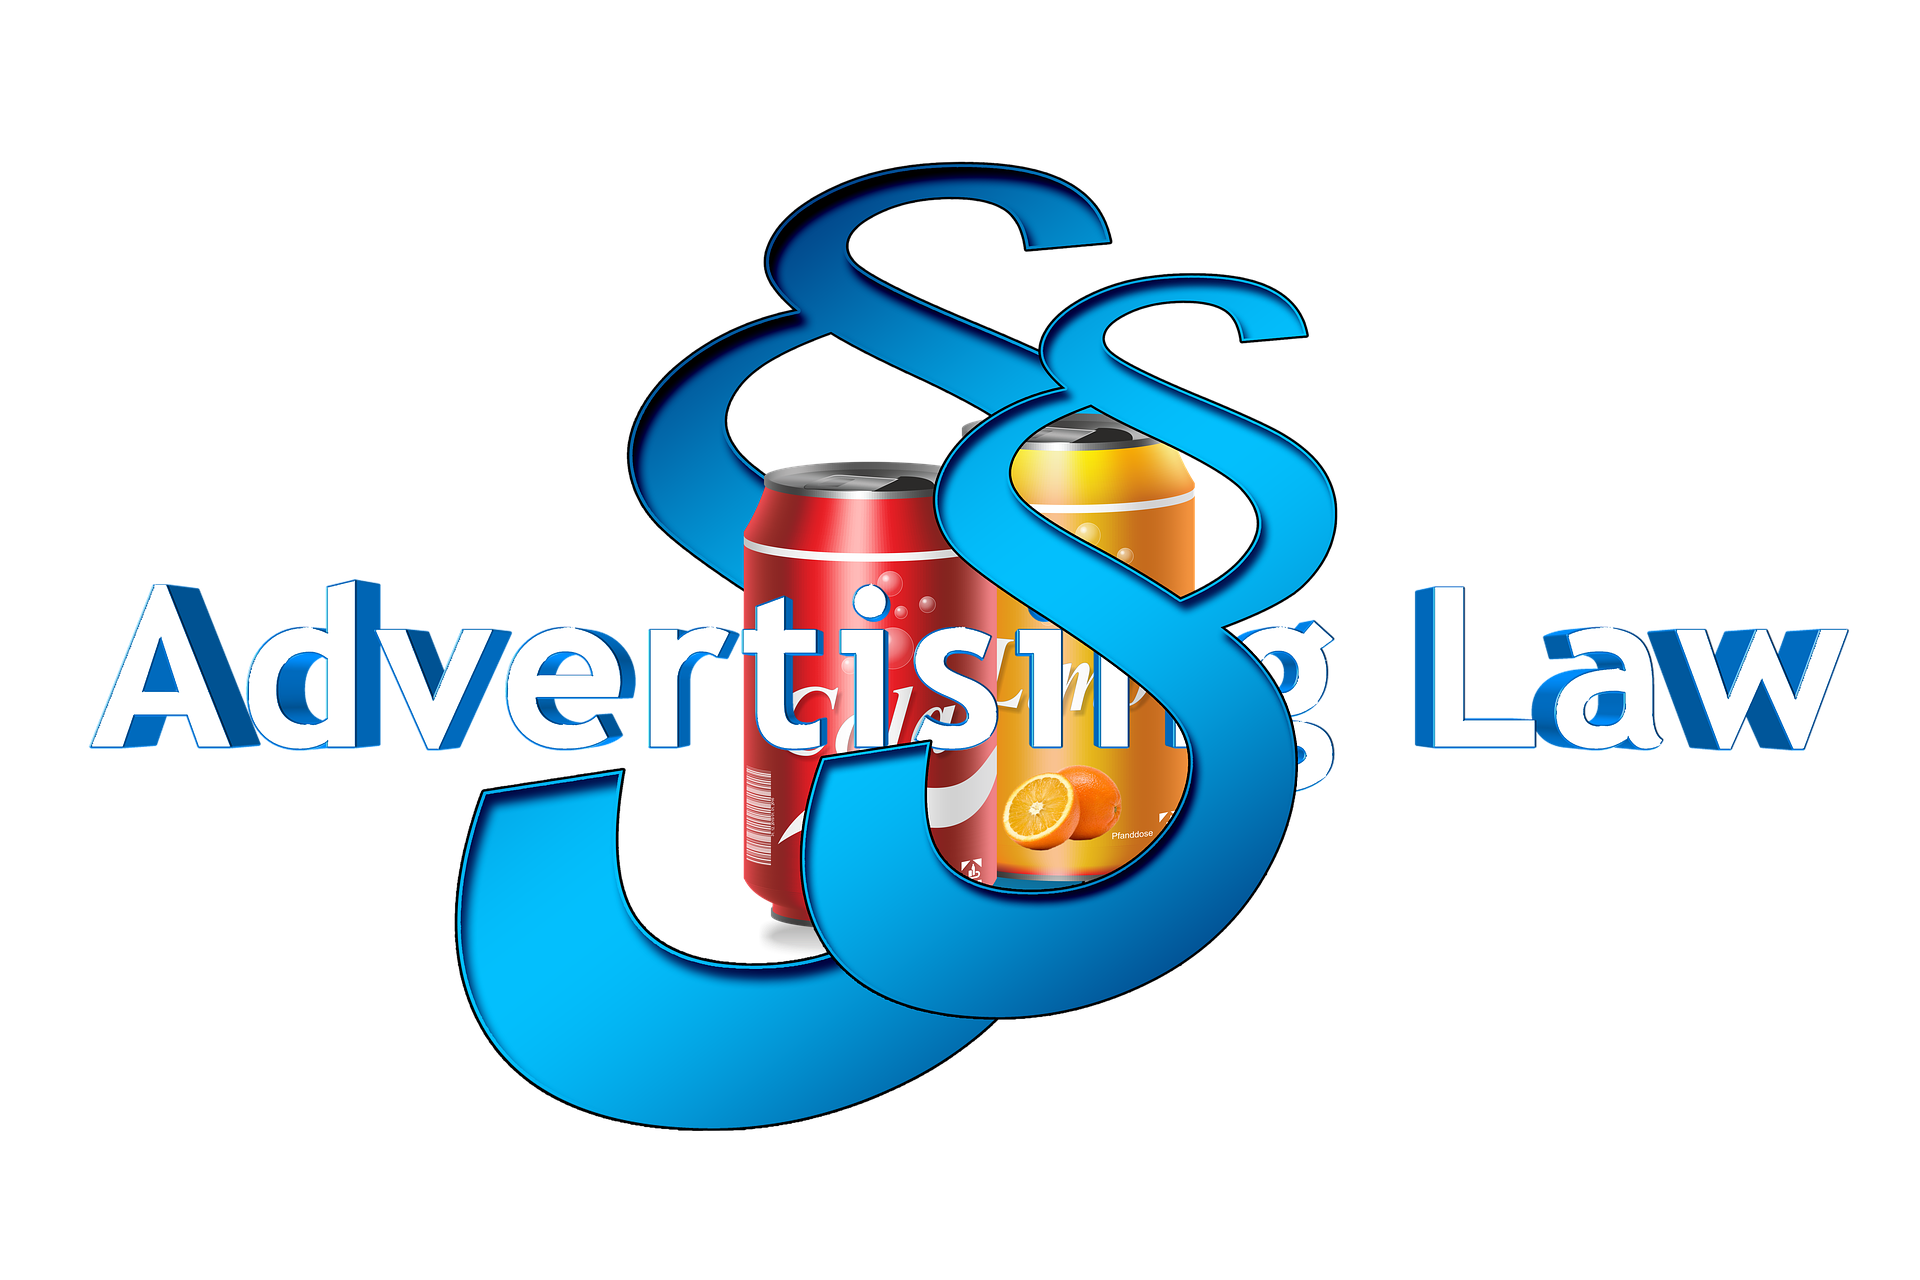 Trademark and Advertising Law